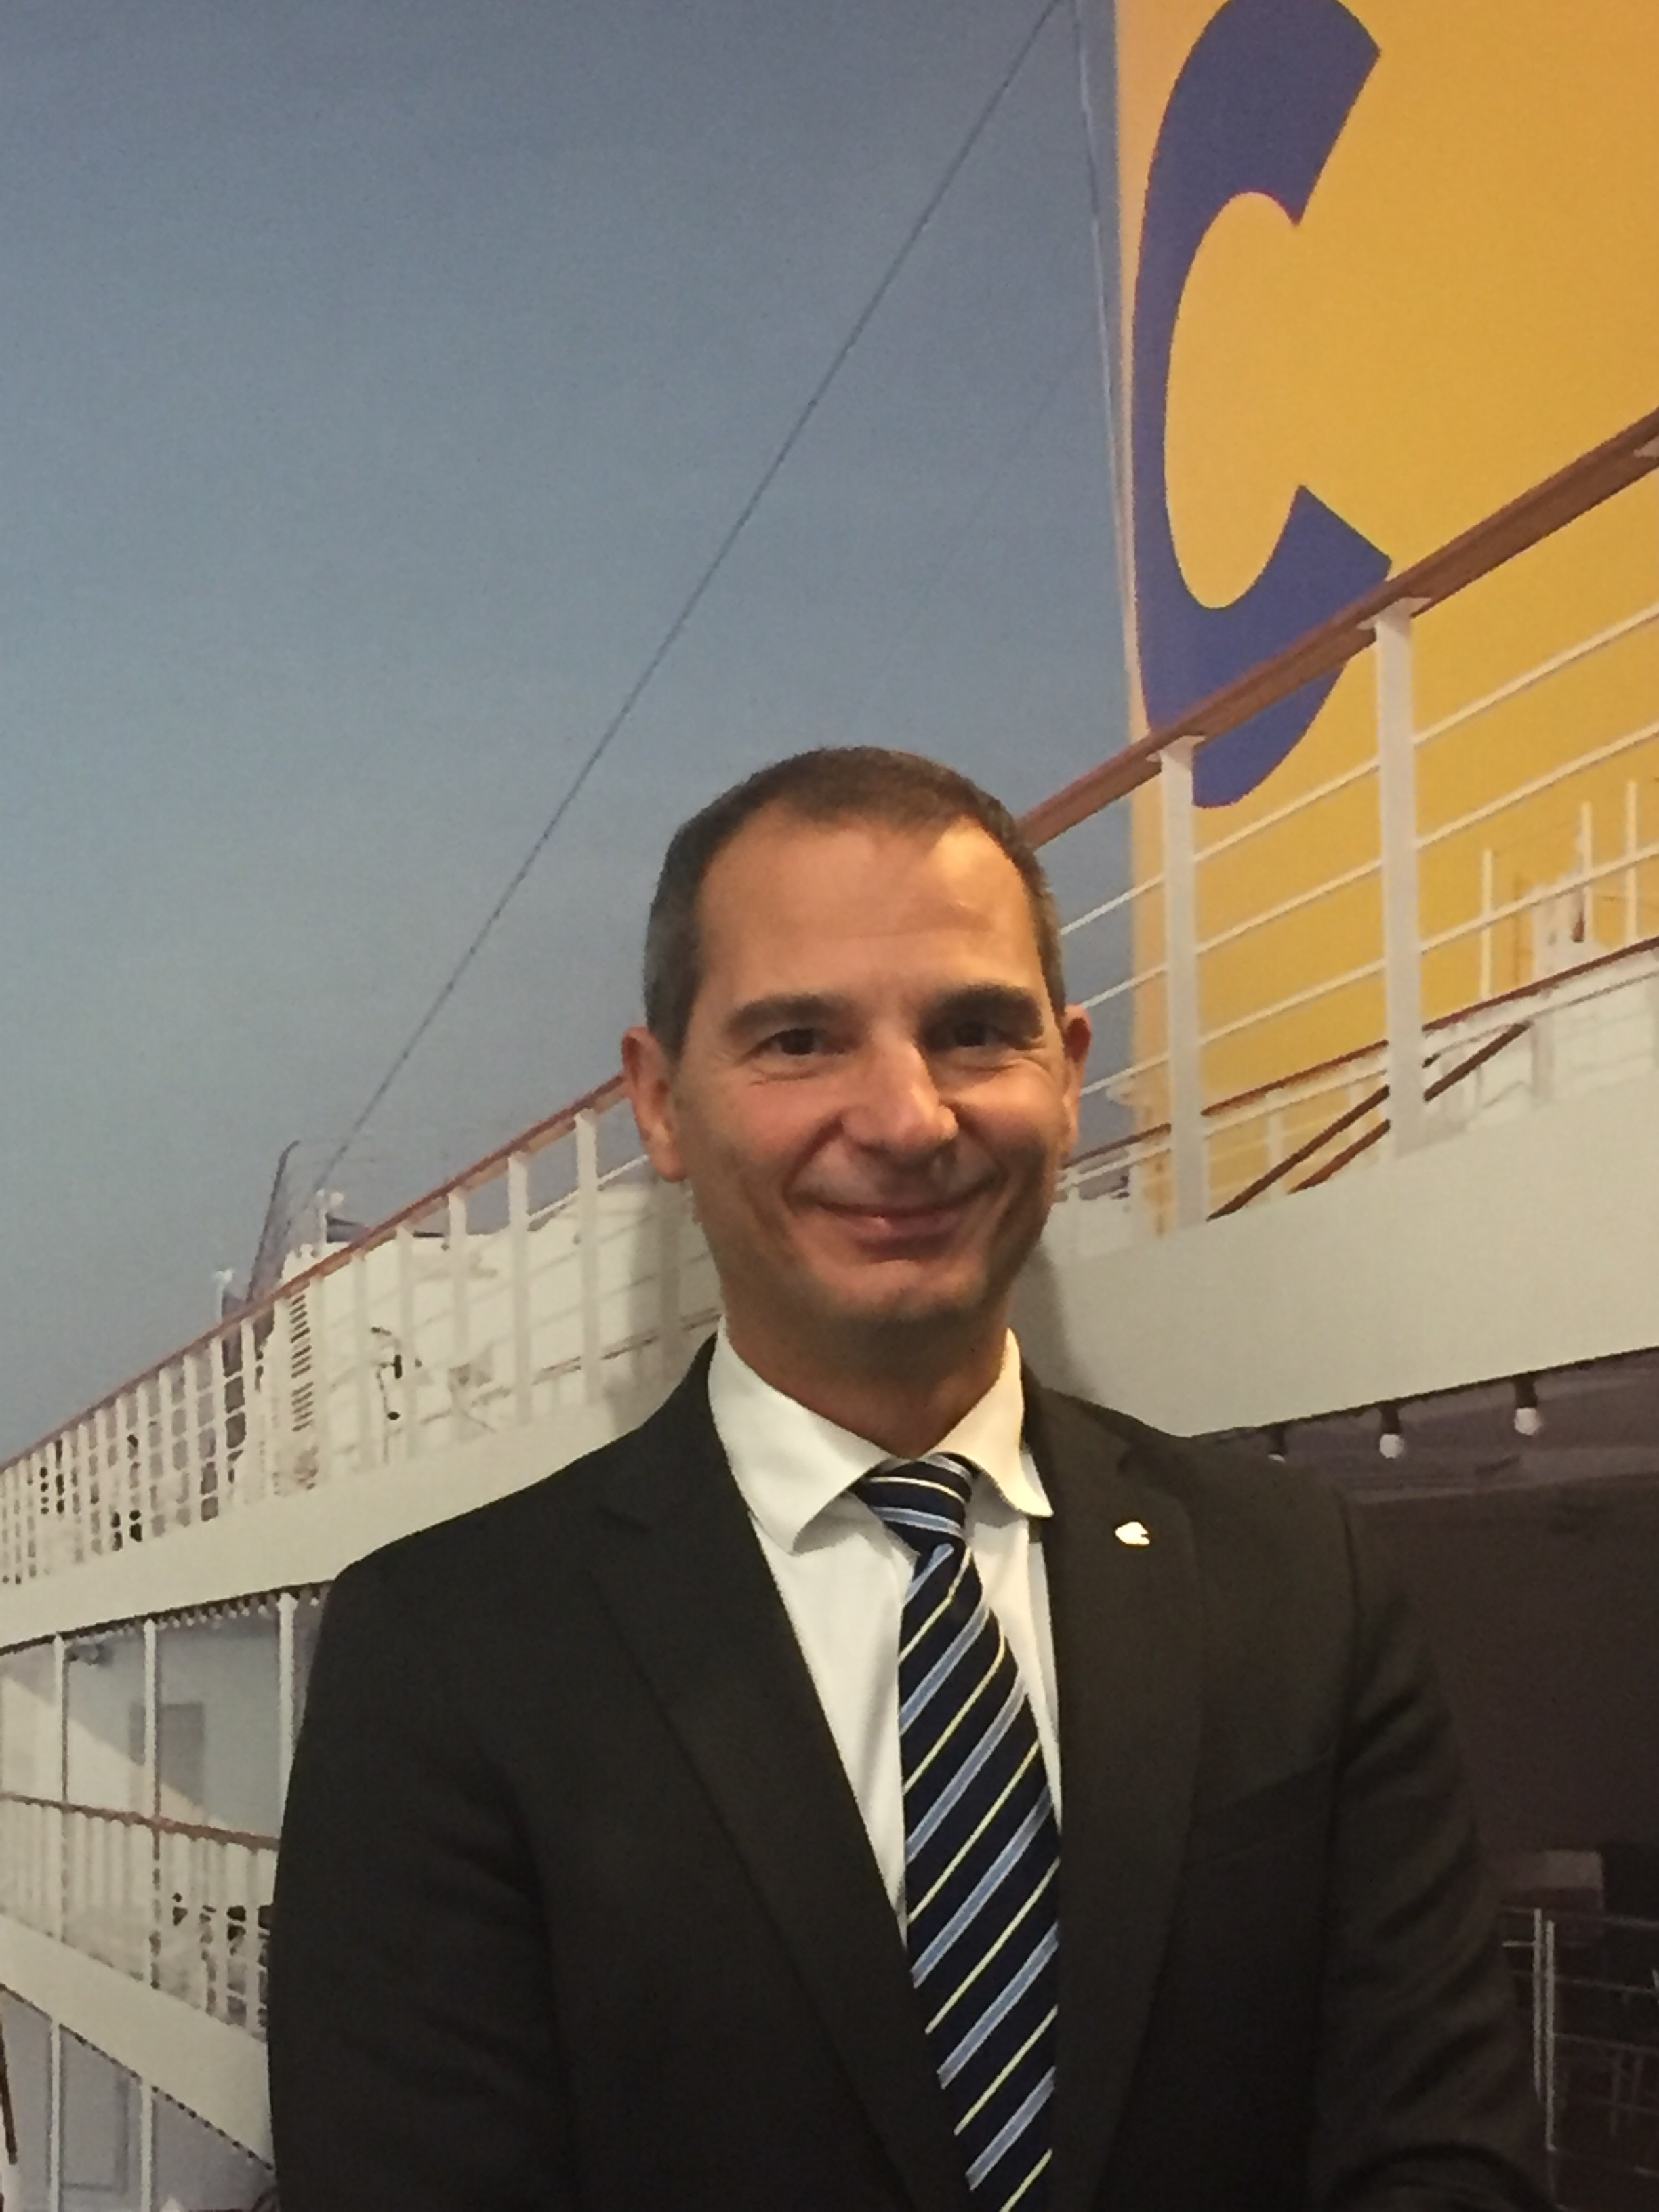 Paolo Tolle, Vice President Human Resources, Costa Crociere